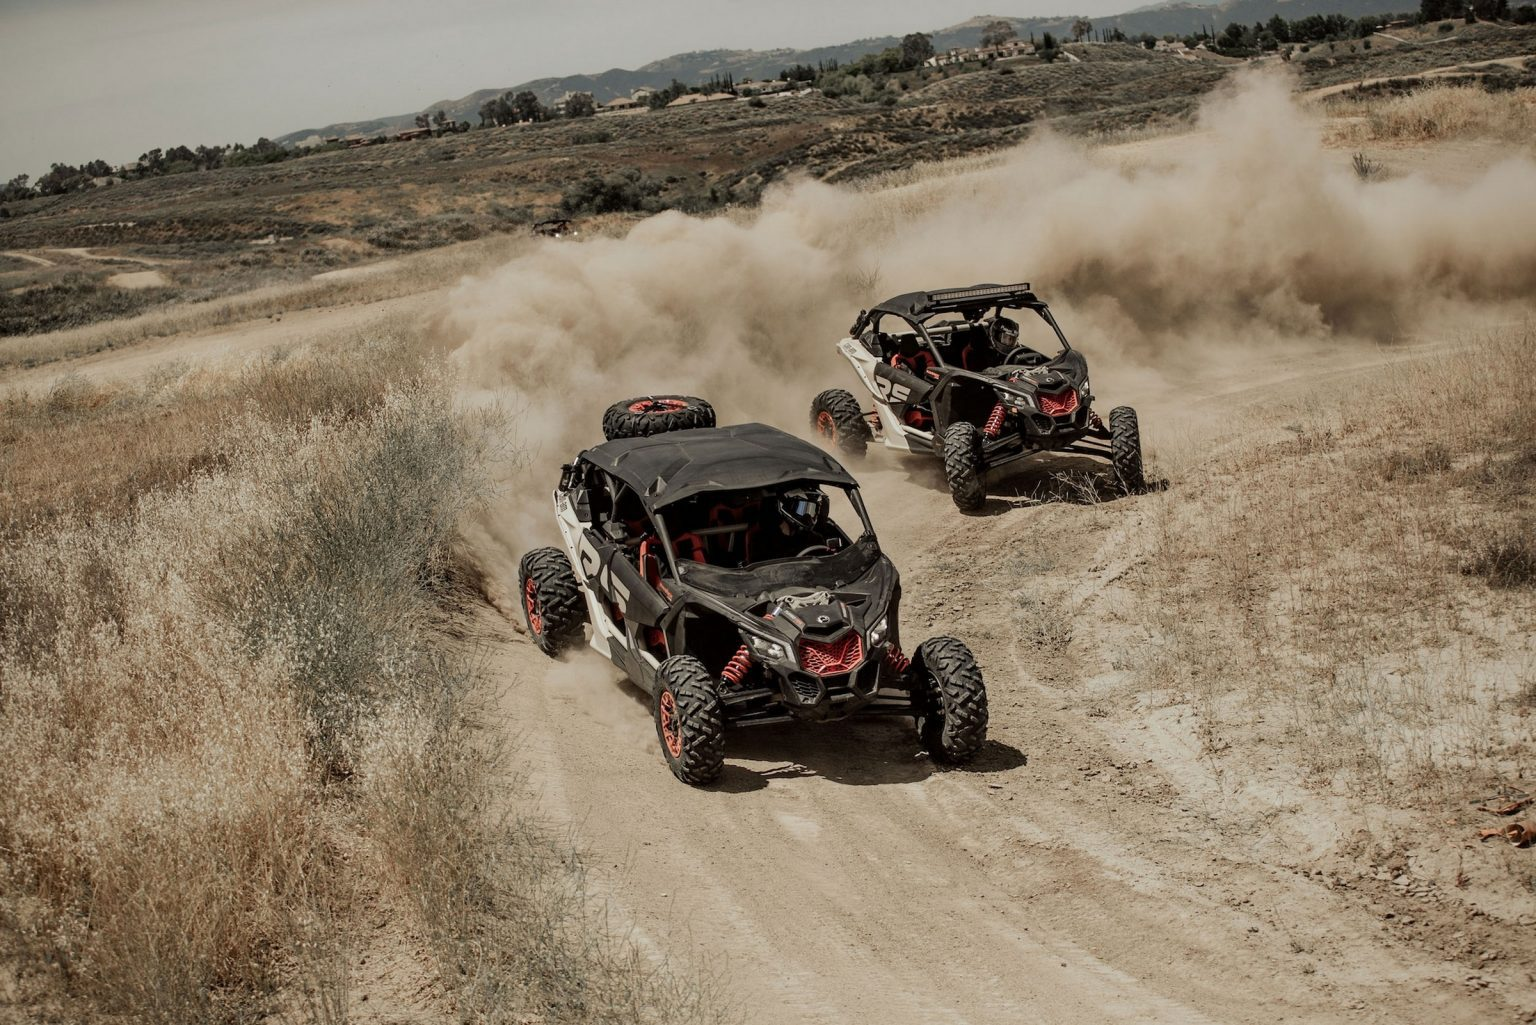 Can-Am Maverick X3 X-RS 2021 Quad Can-Am 2021 Can-Am Defender 2021 Can-Am Outlander 2021 Can-Am Maverick X3 2021 Can-Am Maverick Sport 2021 Can-Am Maverick Trail 2021 Can-Am Defender 2021 Can-Am Outlander 450 570 Can-Am Outlander 2021 Can-Am Renegade 2021 Can-Am DS 2021